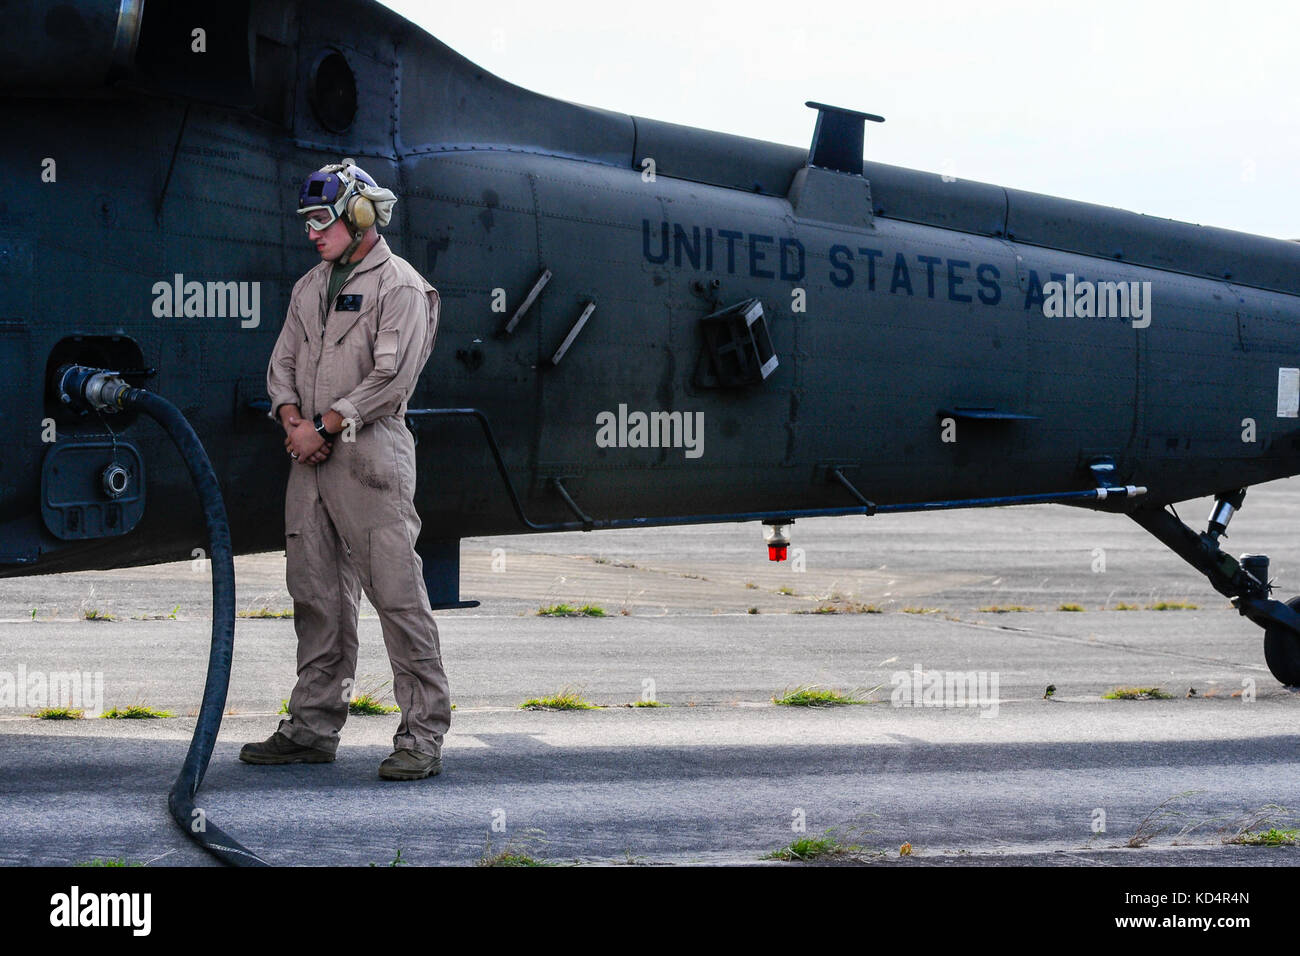 U.S. Marine Cpl. Jason D. Moxley, assigned to the 273rd Marine Wing Support Squadron, Air Operations Company, waits Stock Photo